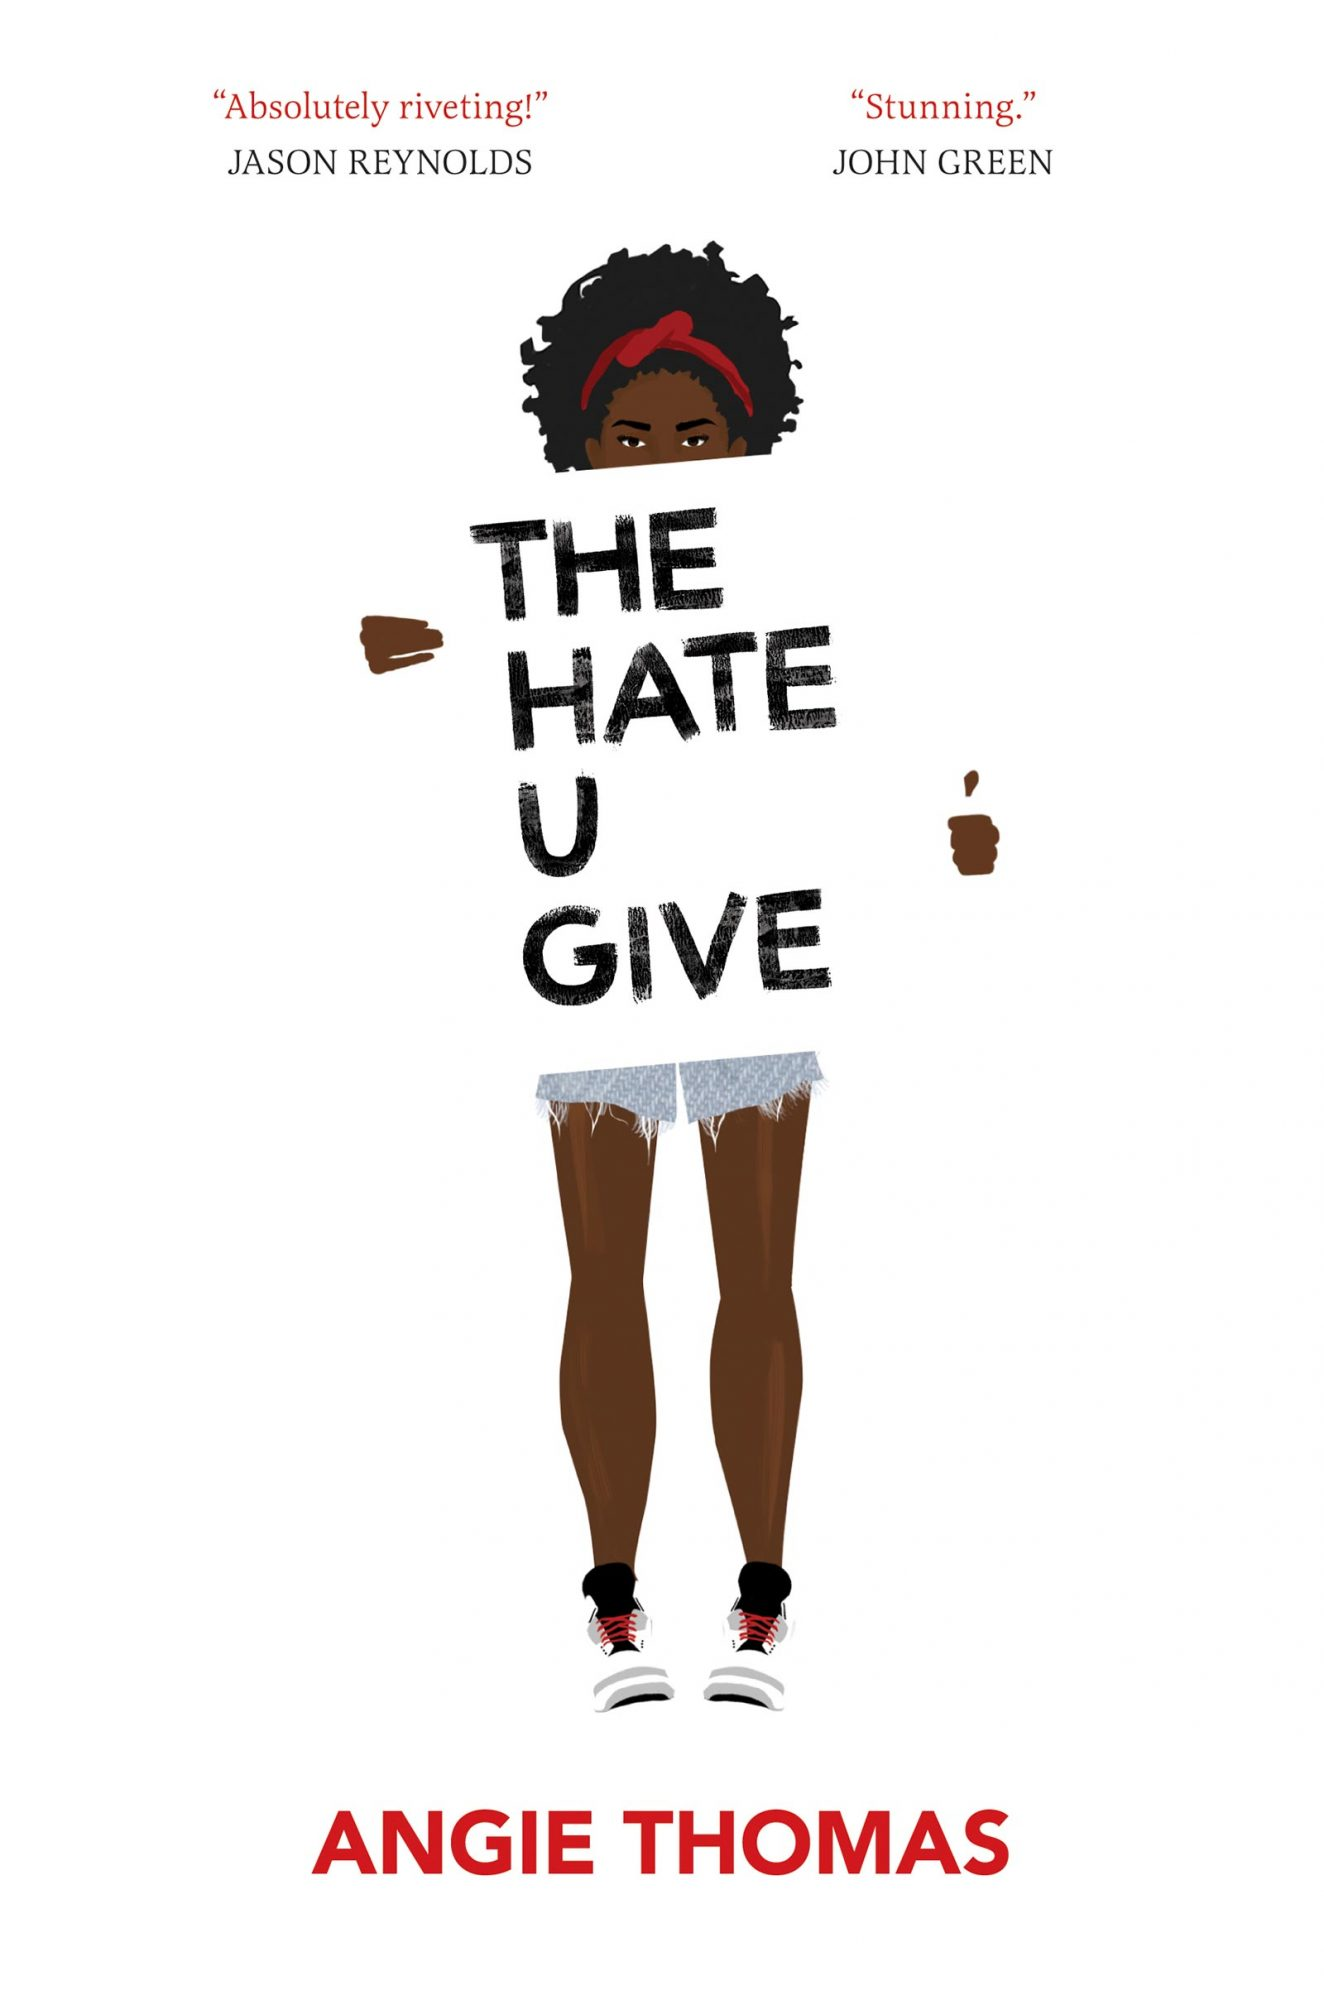 The Hate U Give (2/28/17)by Angie Thomas